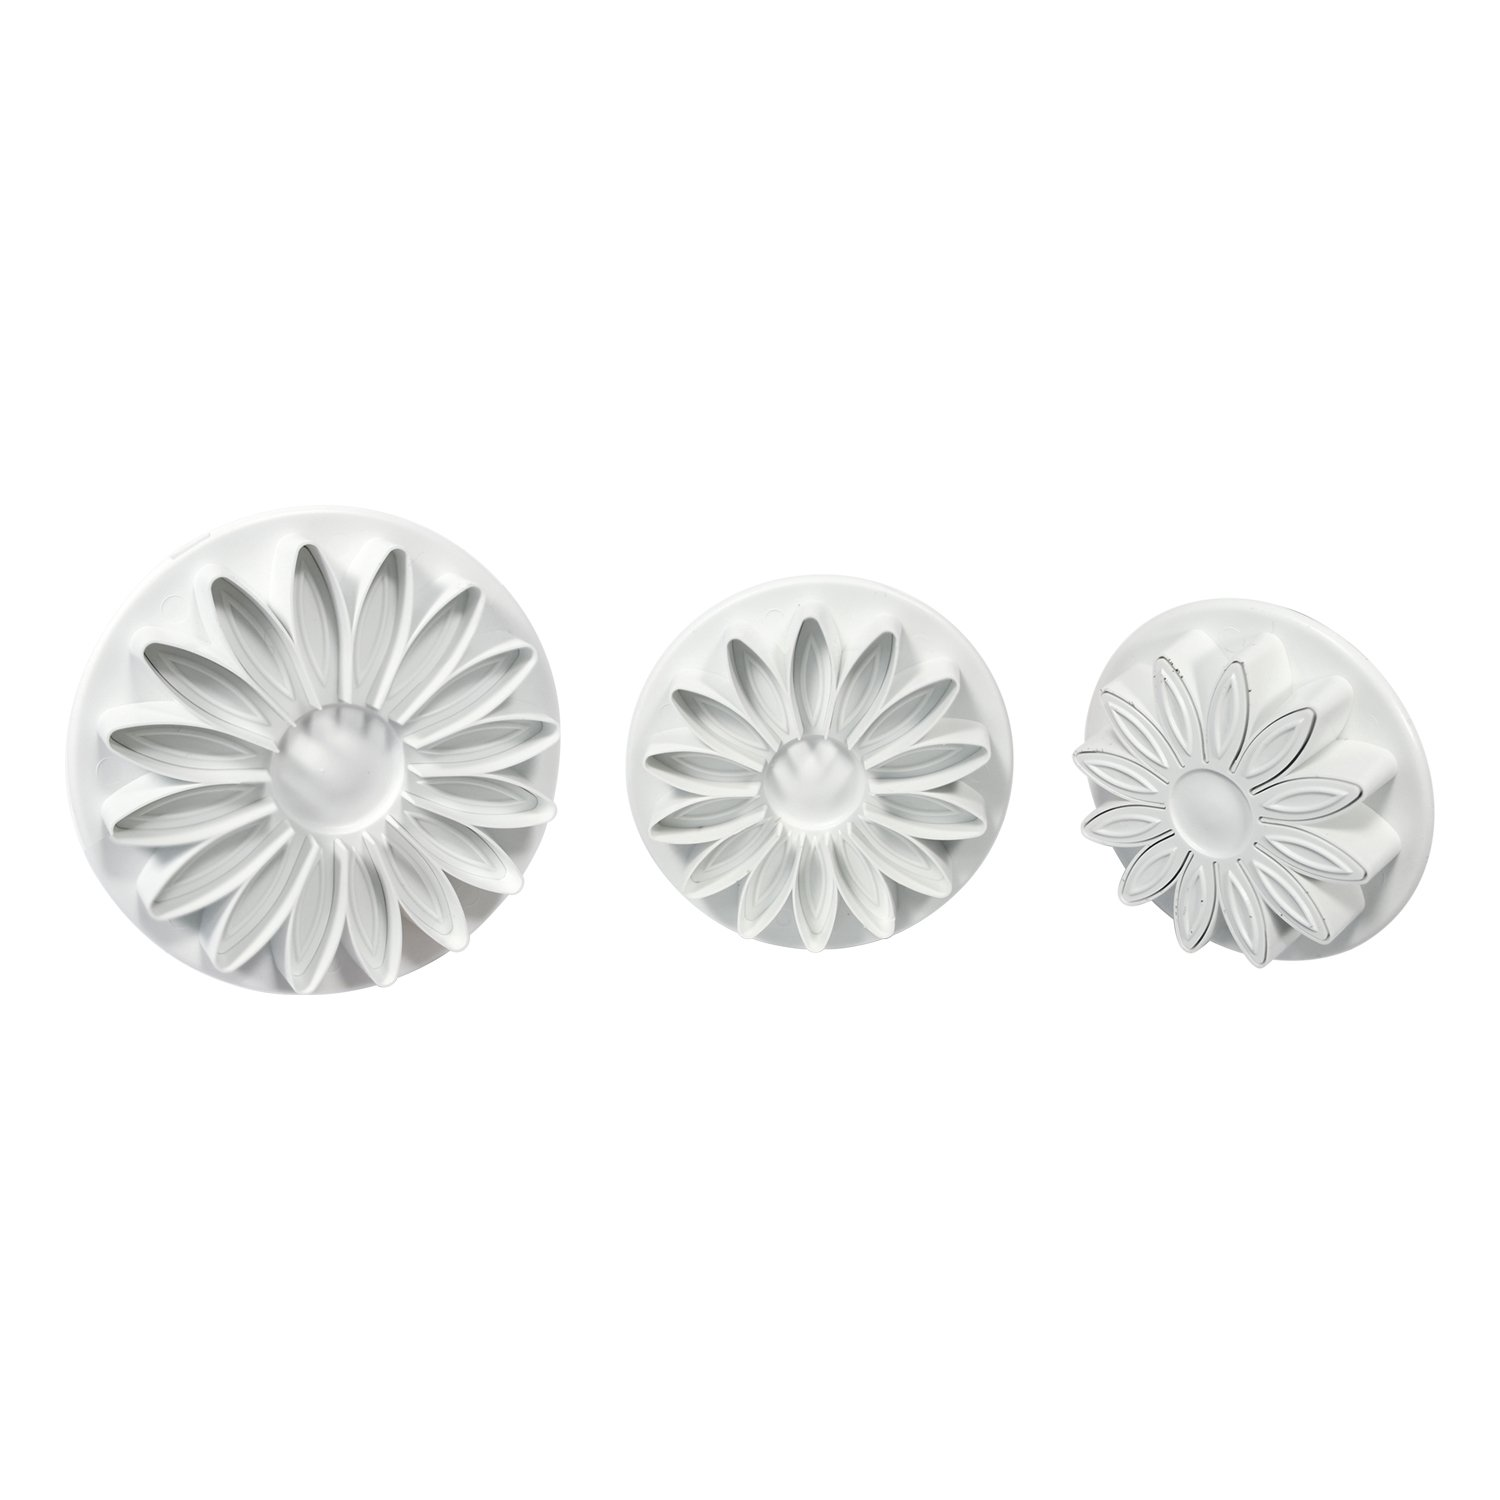 PME Plunger Cutters, Veined Sunflower Daisy and Gerbera, 3-Pack by PME